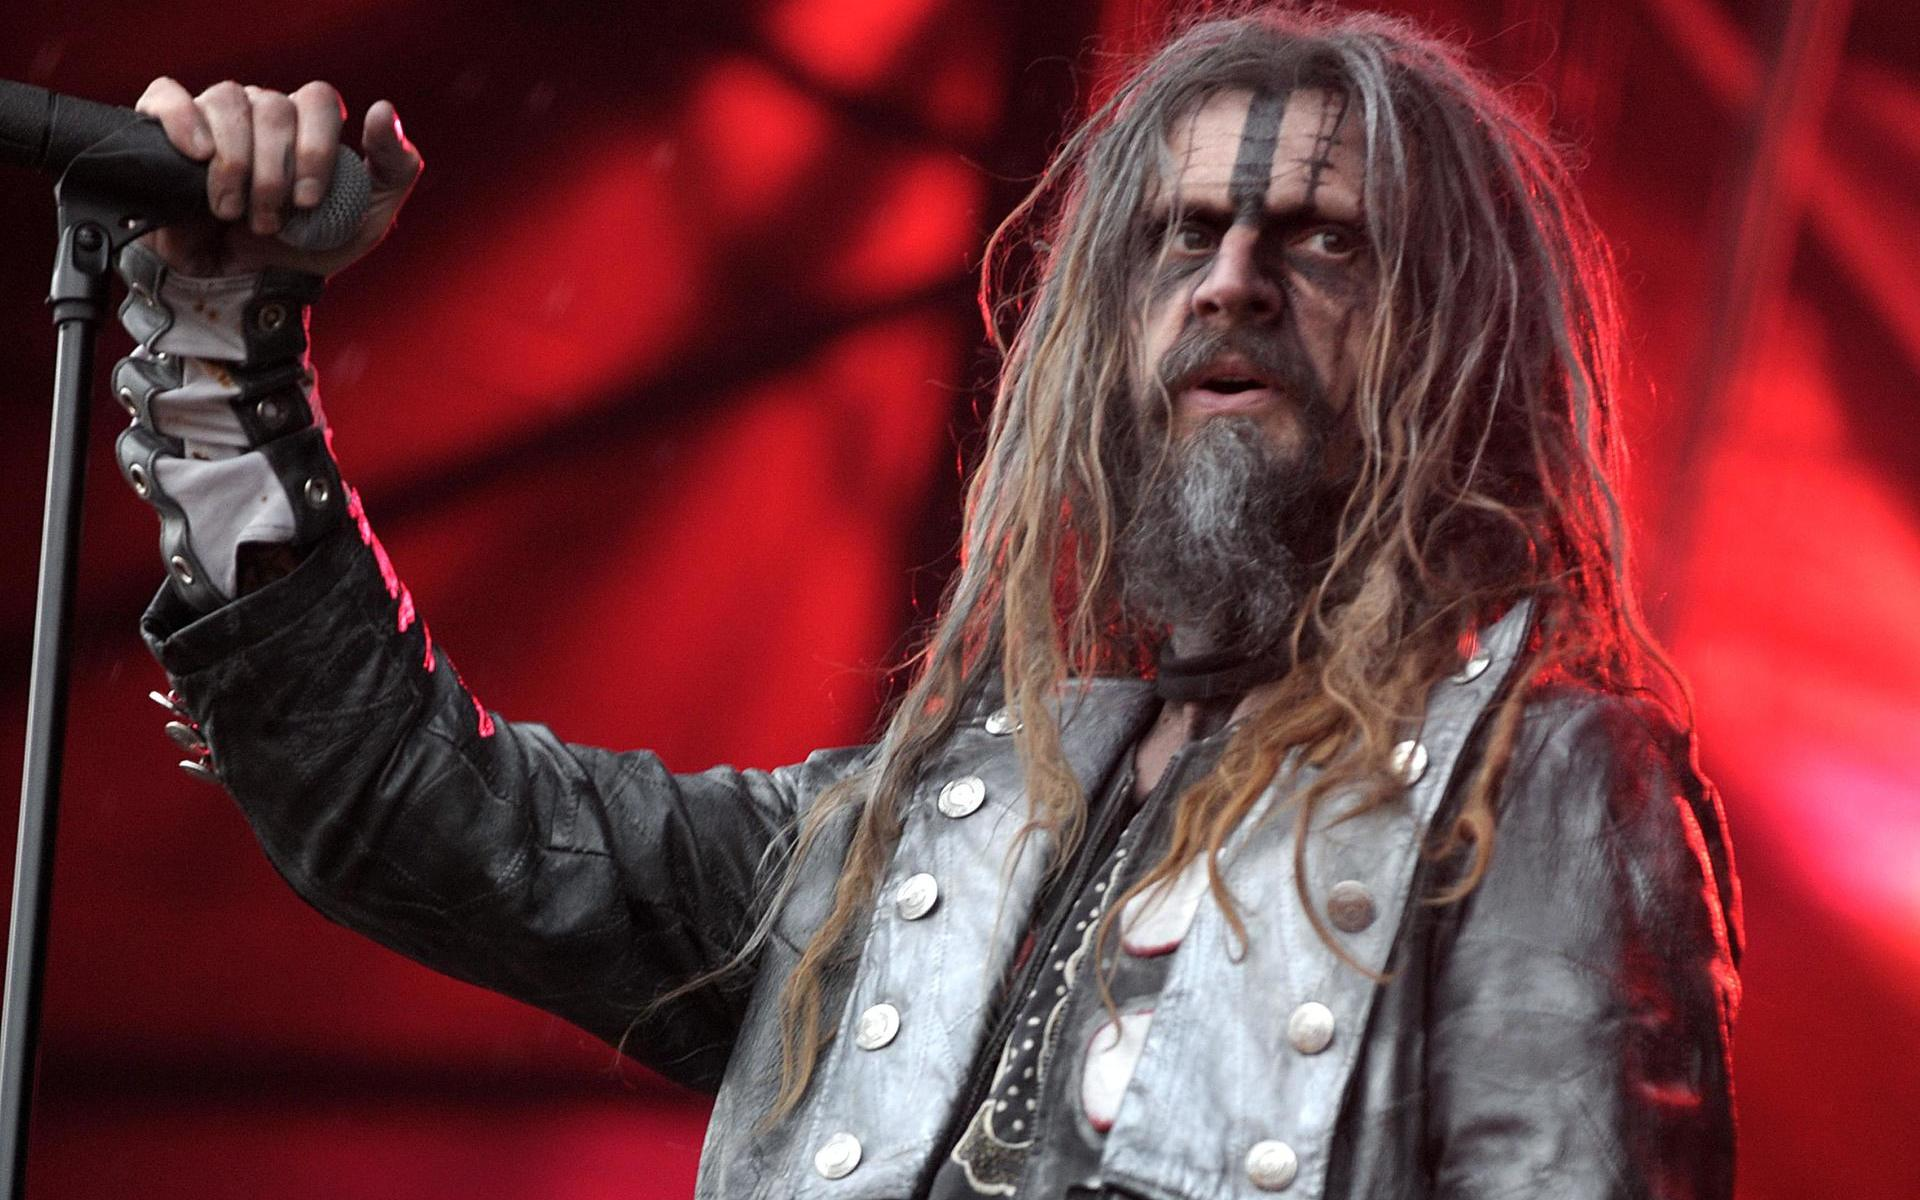 hight resolution of rob zombie billings july 7 25 2019 at rimrock auto arena at metrapark tickets seatgeek